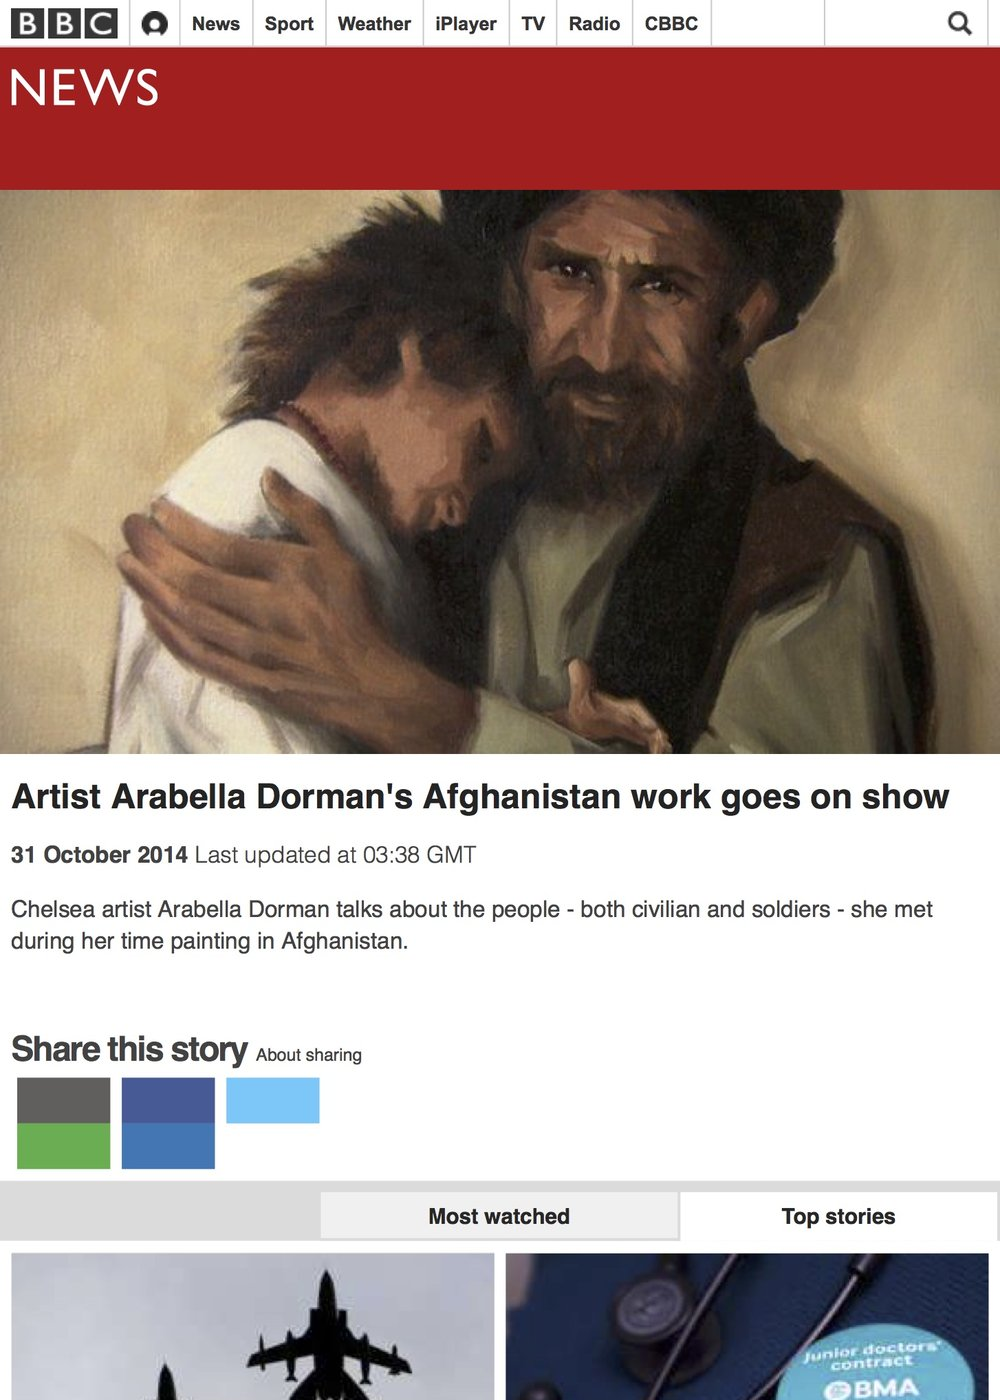 Artist Arabella Dorman's Afghanistan work goes on show - BBC News.jpg